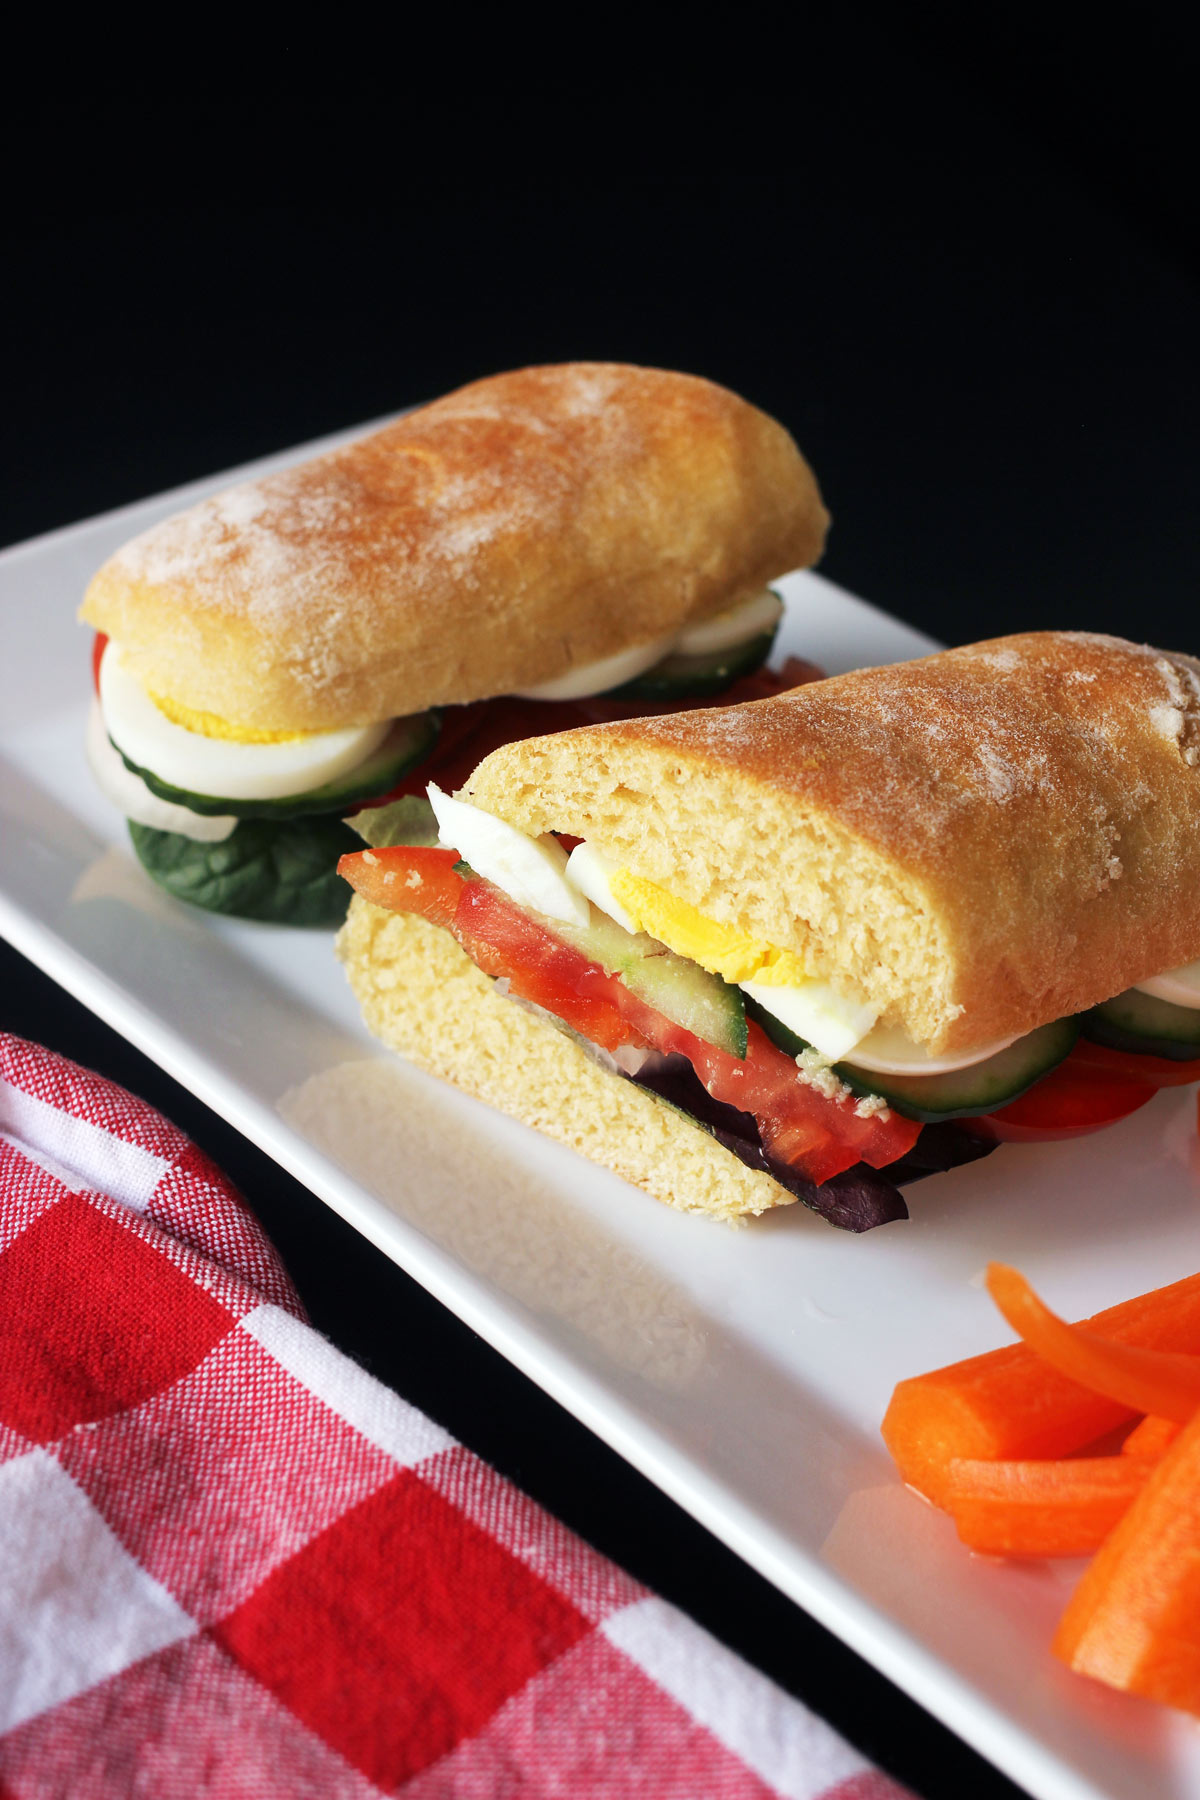 egg sandwich cut in half on platter with carrots